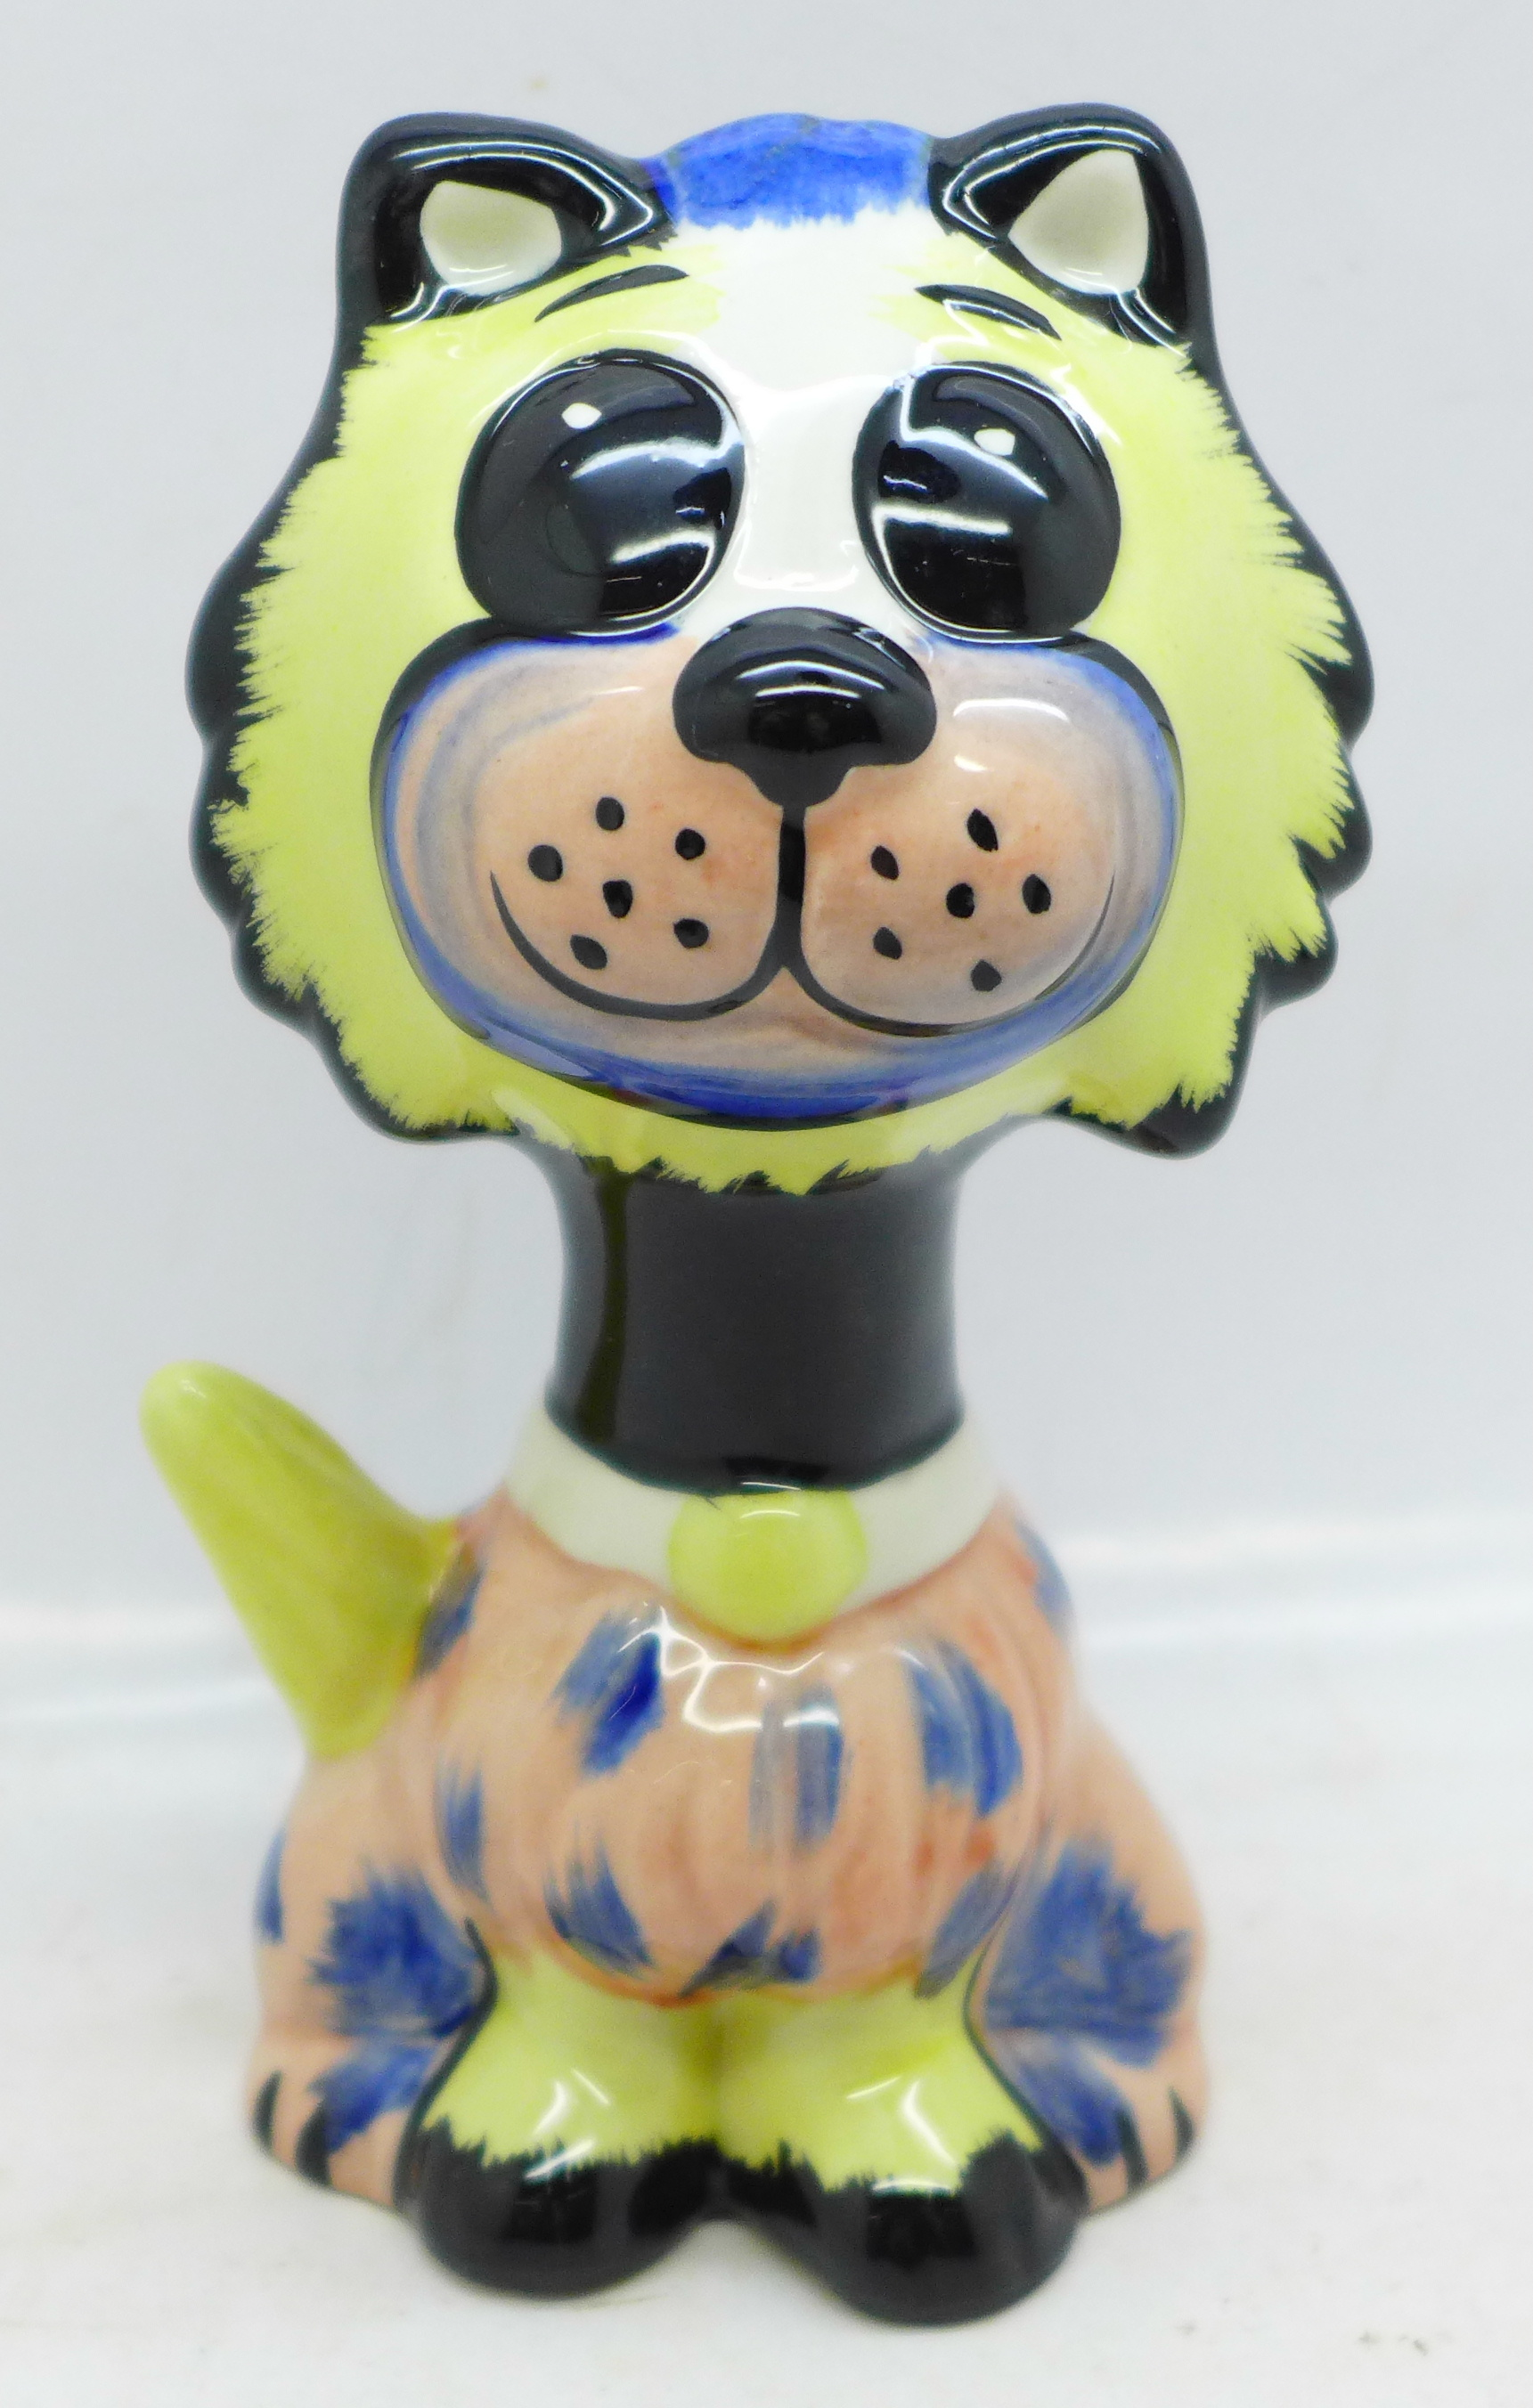 Lorna Bailey Pottery, 'Muppet the Cat', signed on base, 14cm